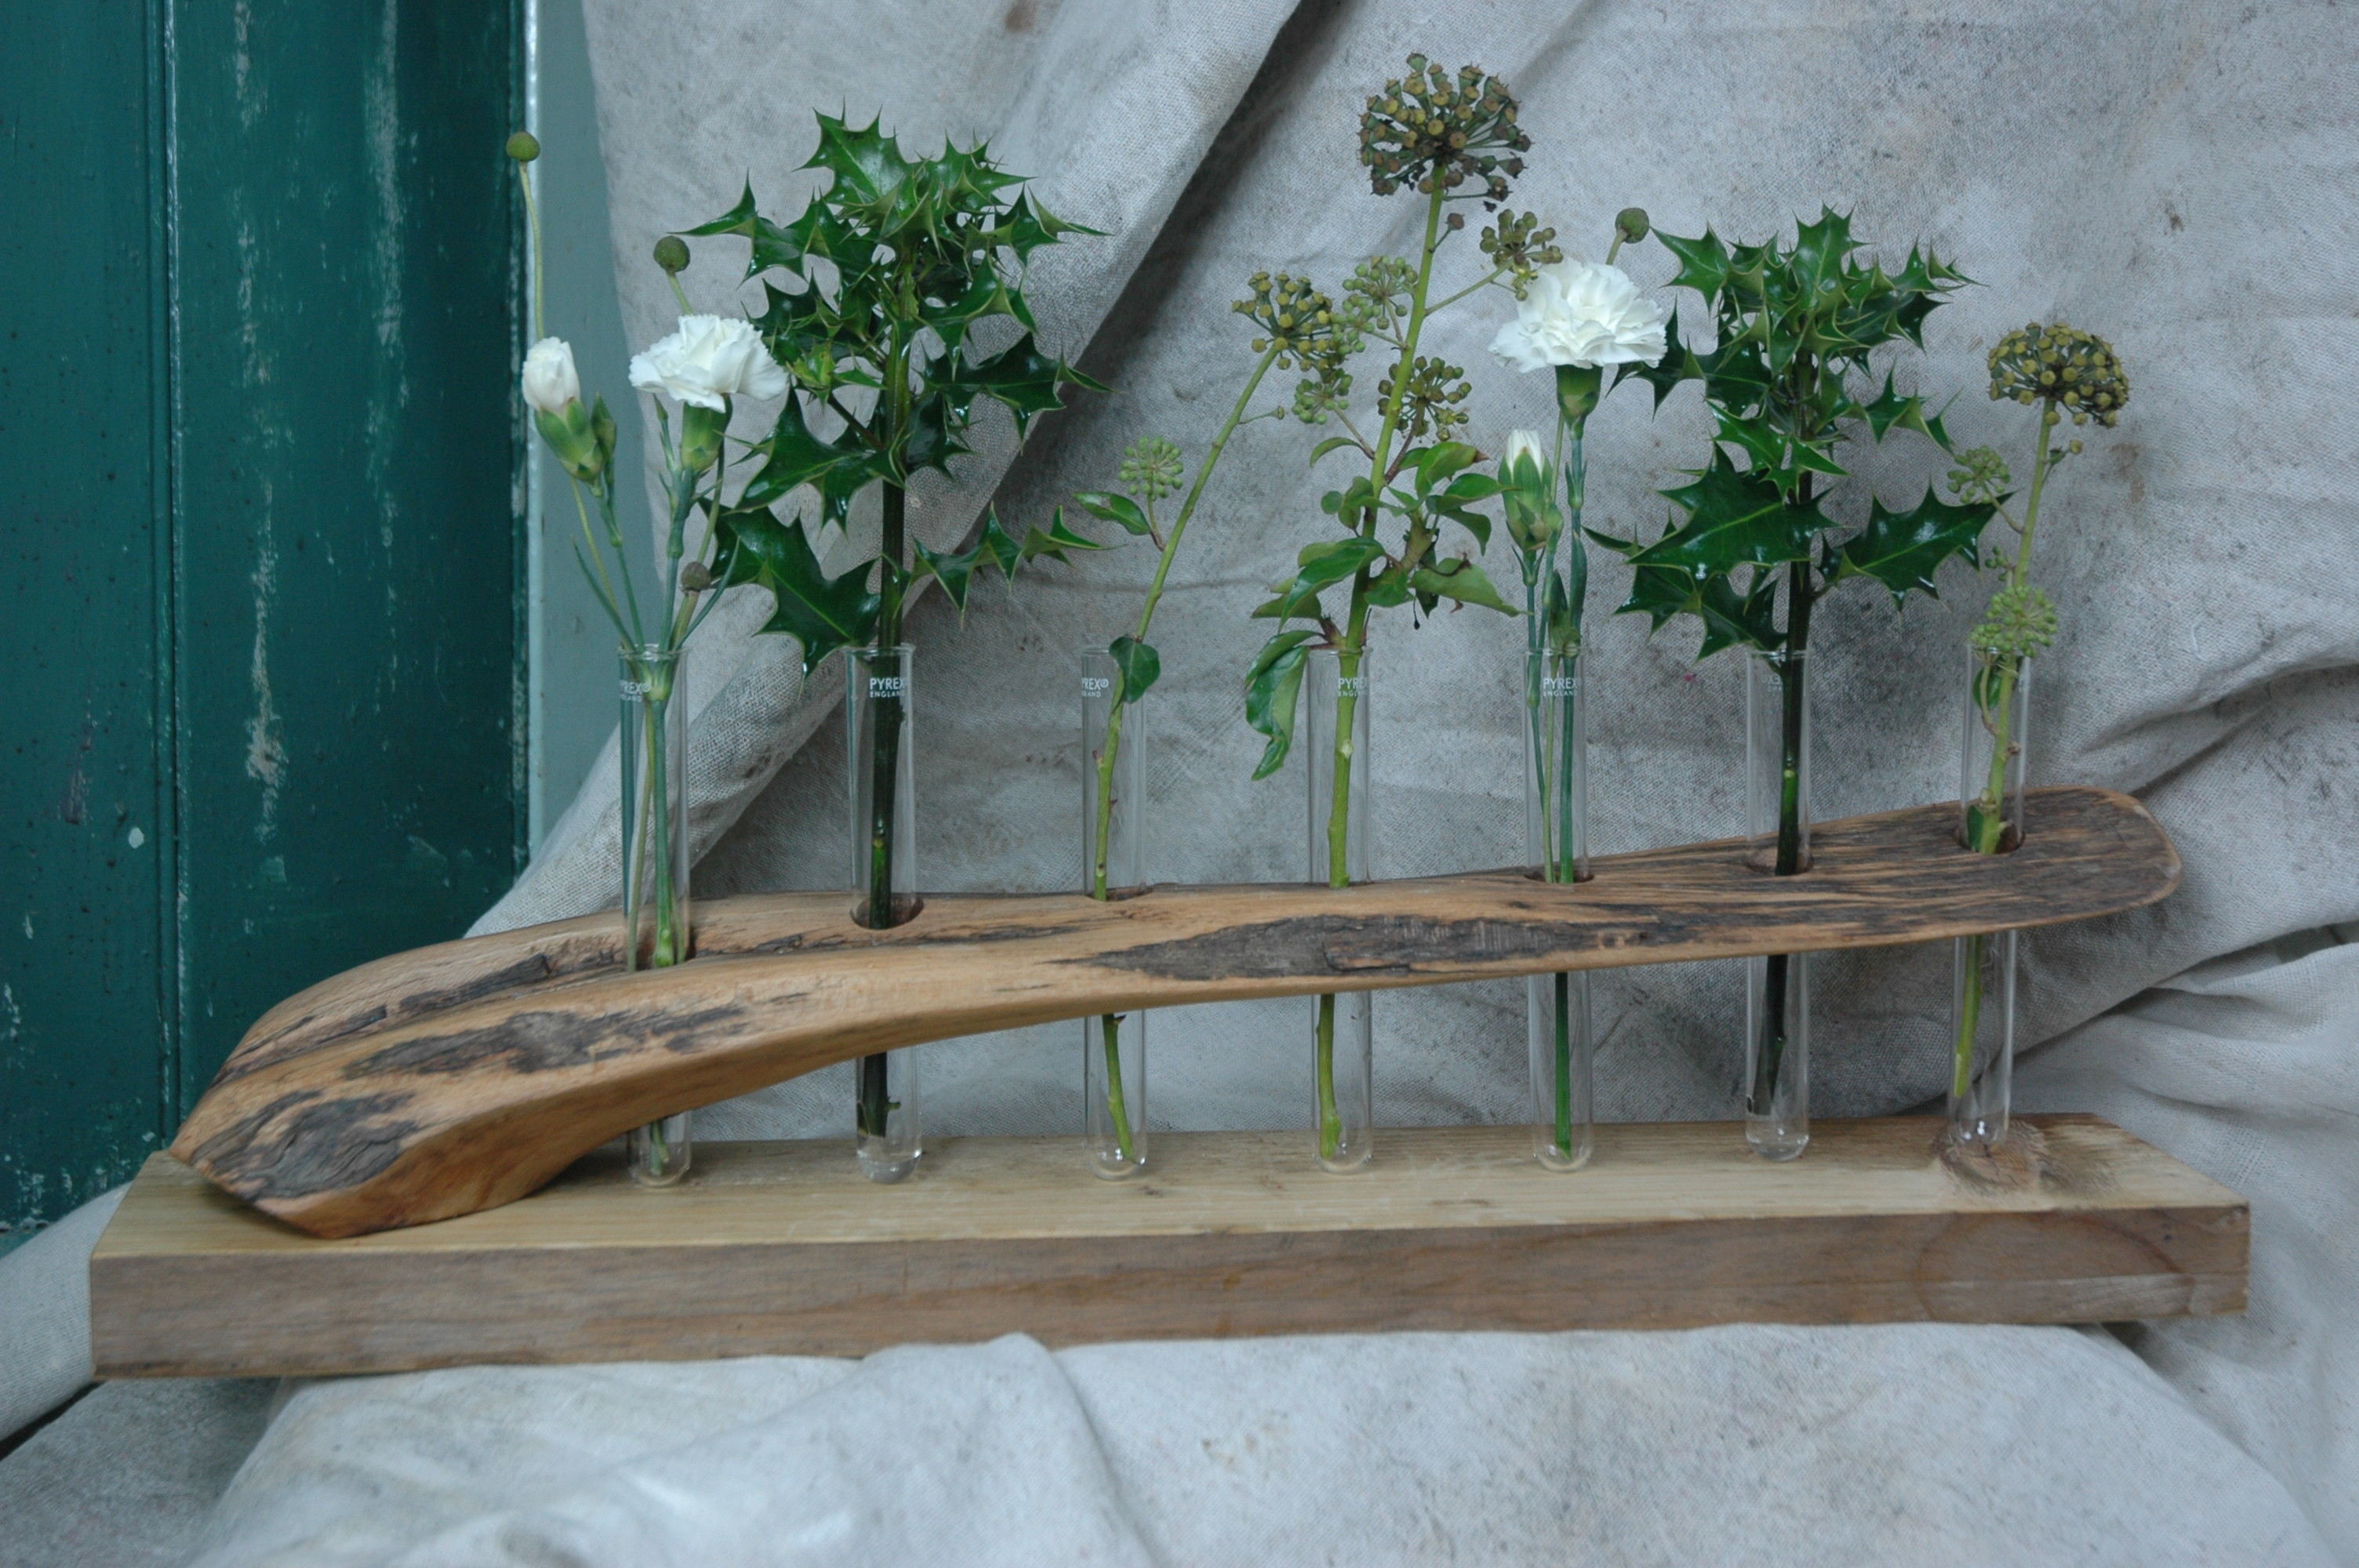 Found wood modern rustic flower test tube holder table centre piece